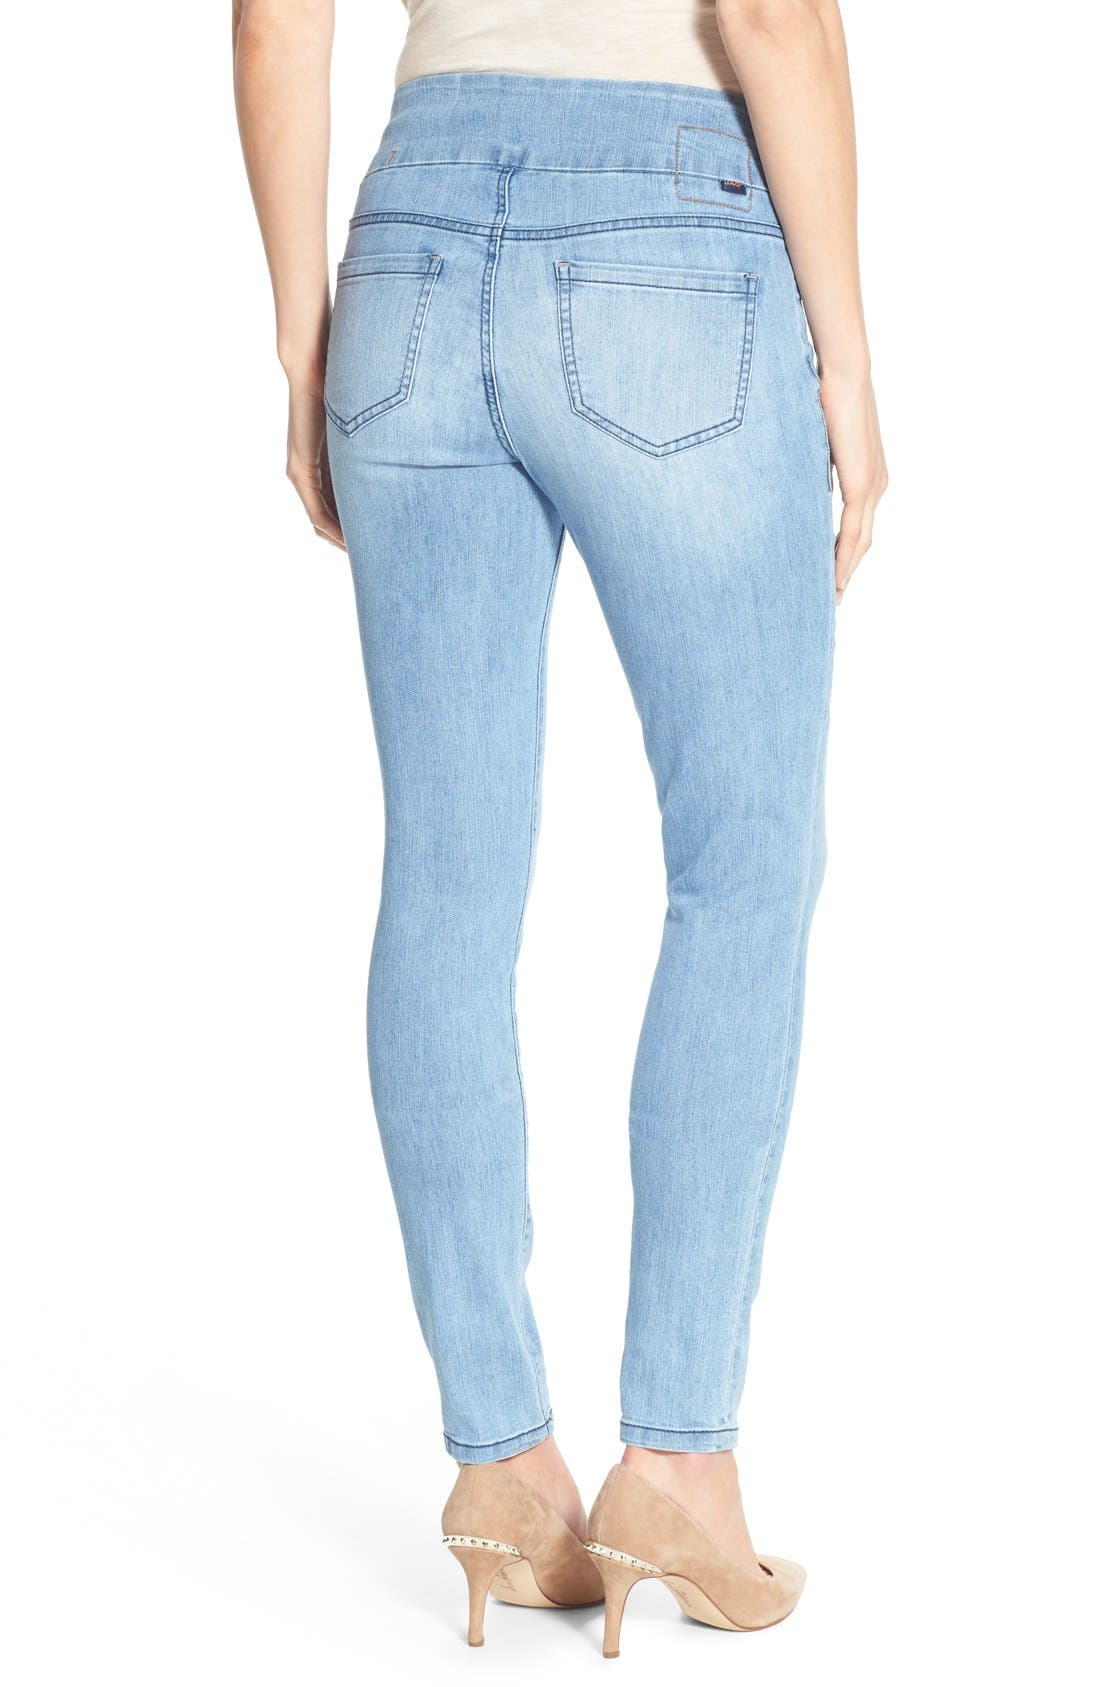 Alternate Image 2  - Jag Jeans 'Nora' Pull-On Stretch Skinny Jeans (Southern Sky)